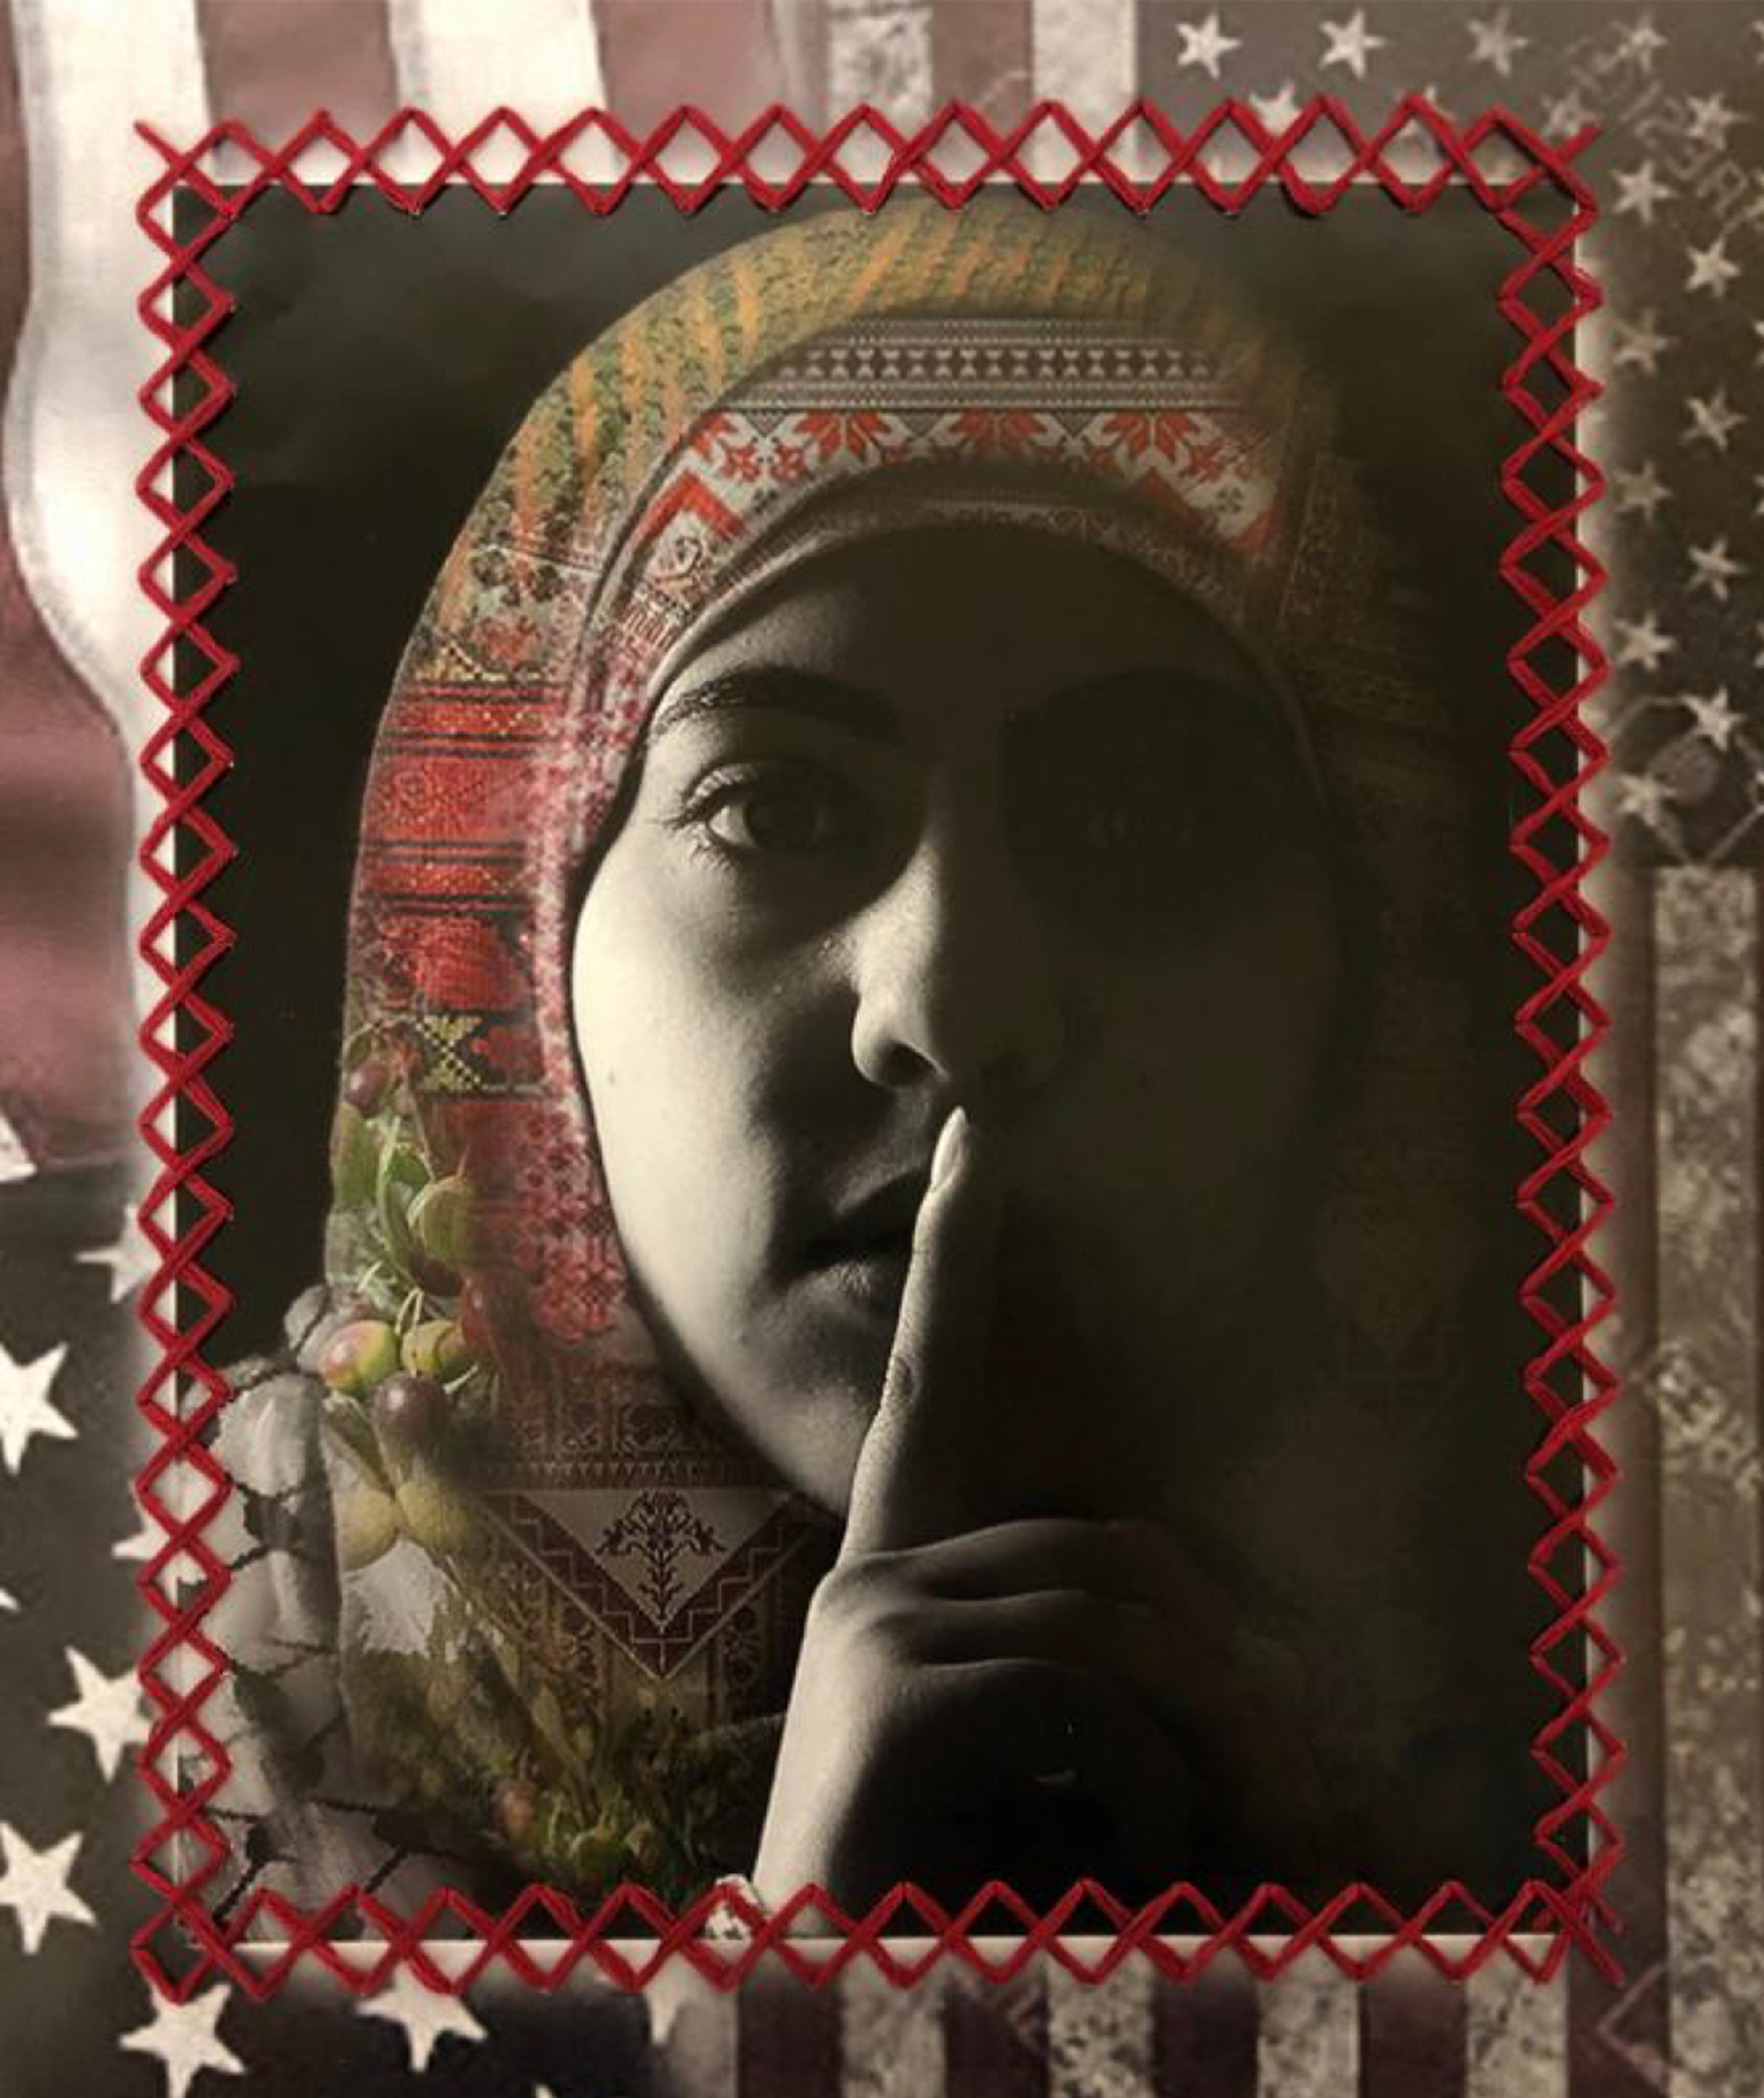 Photo montage of a young woman in a head covering with her finger over her mouth, with the image stitched onto a background of faded american flags